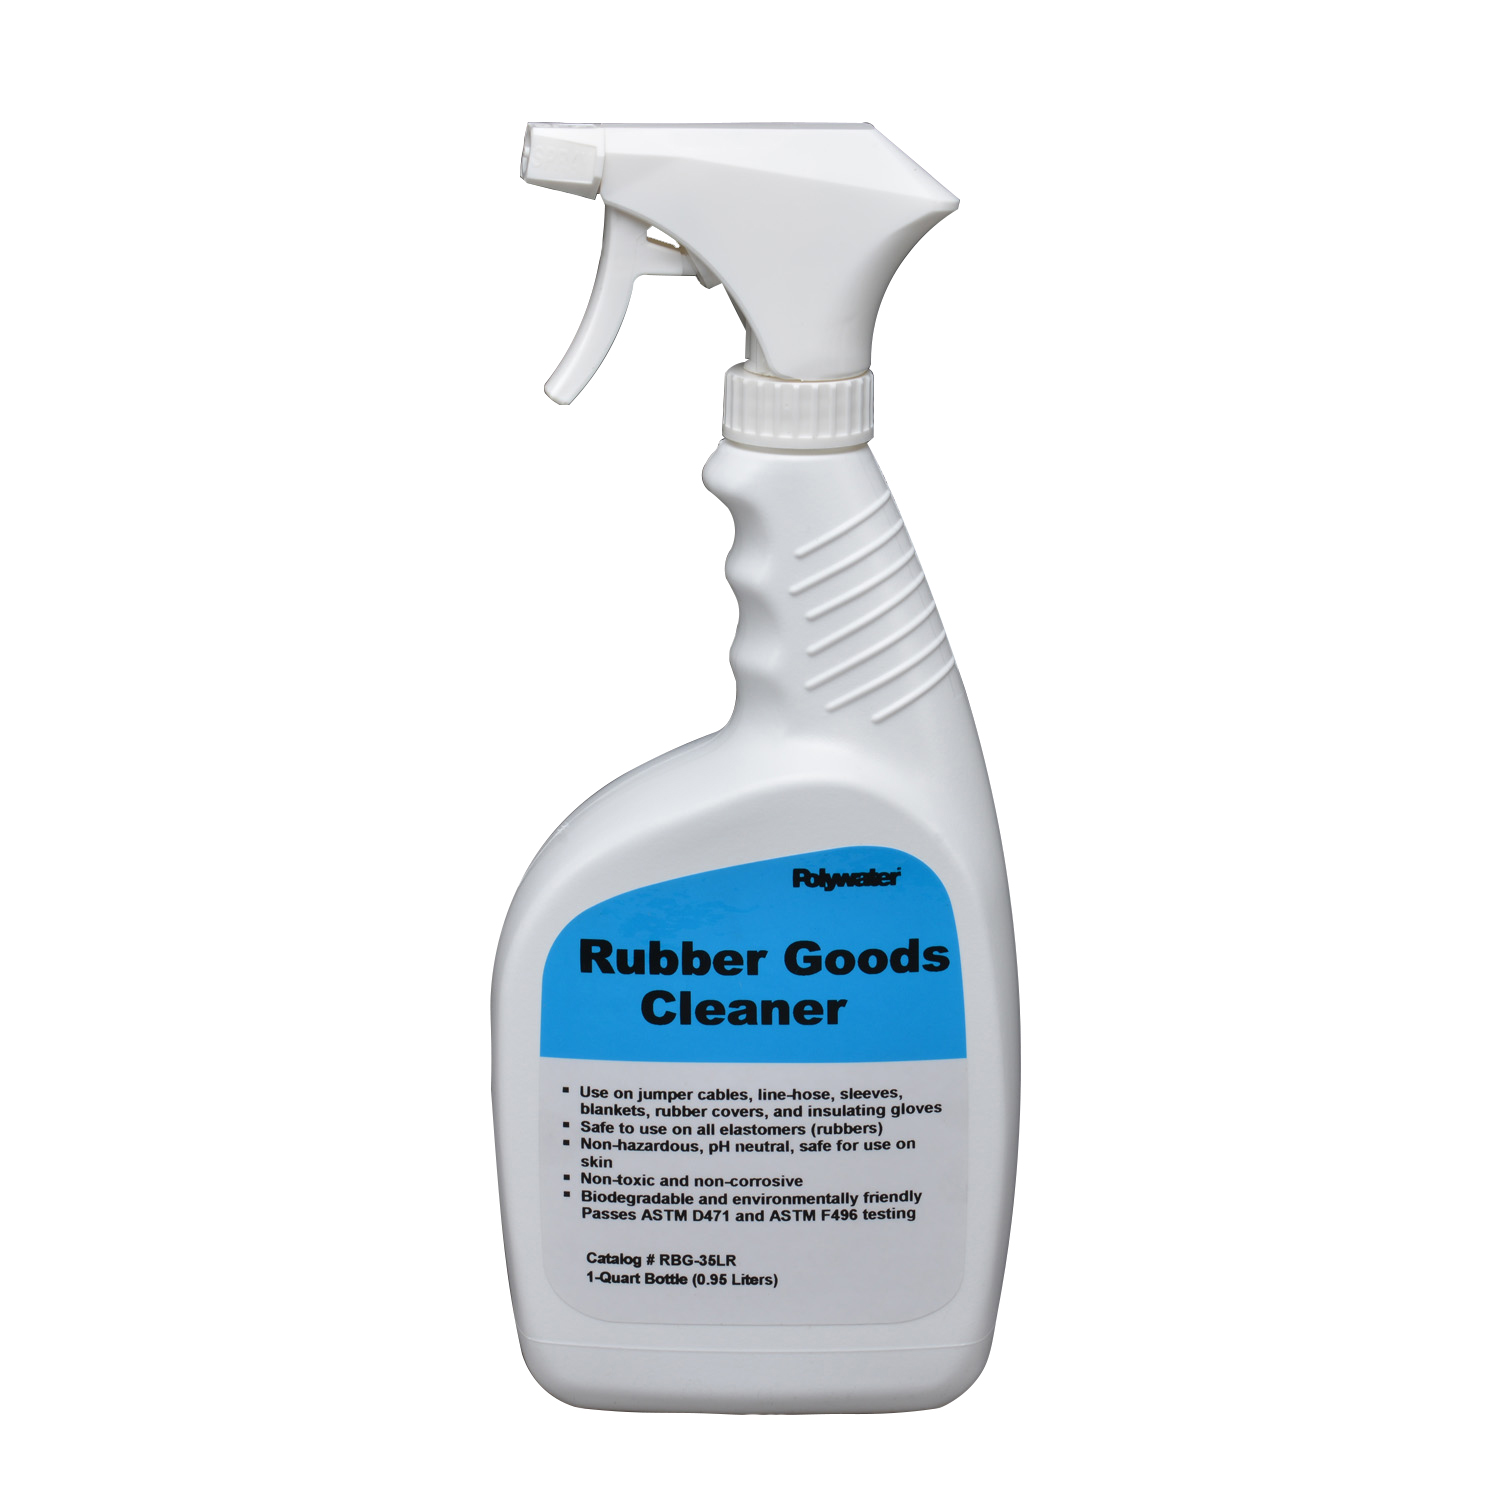 American Polywater RBG-35LR 1 Quart Bottle with Spray Rubber Goods Cleaner